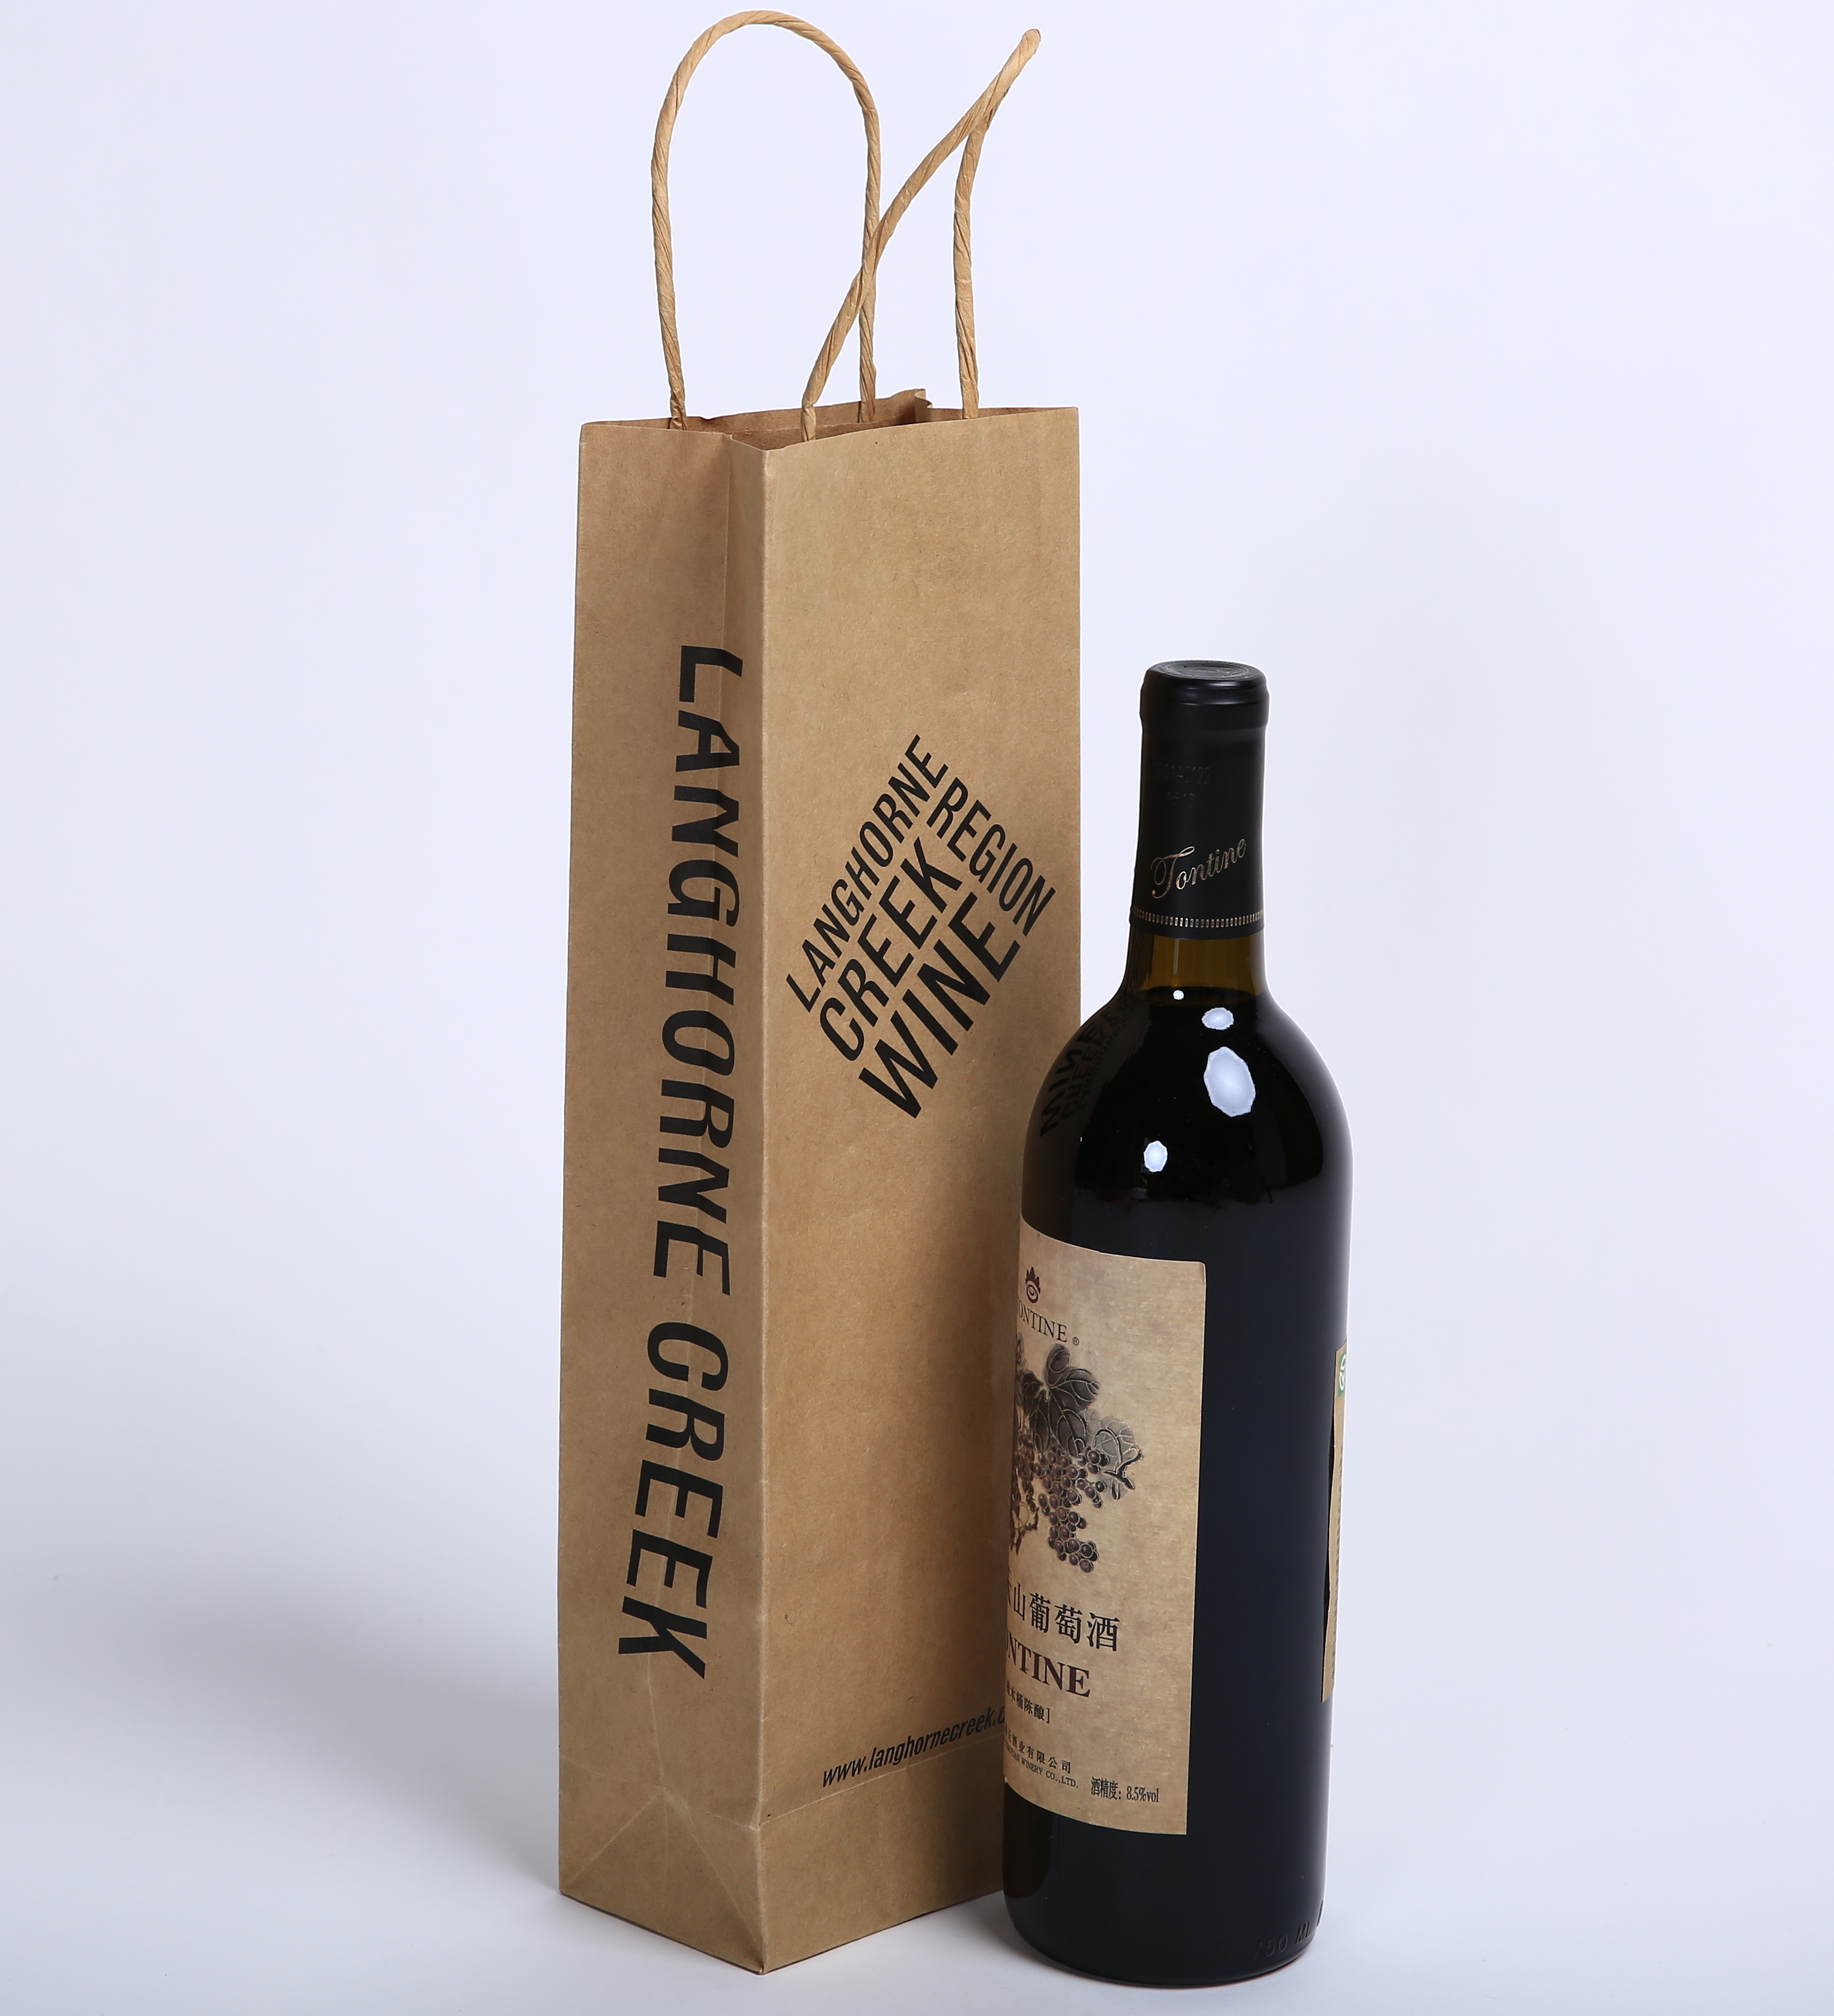 10% OFF! Kraft Paper Handle Bag Win bottle Bag Customize your own Logo twisted handle